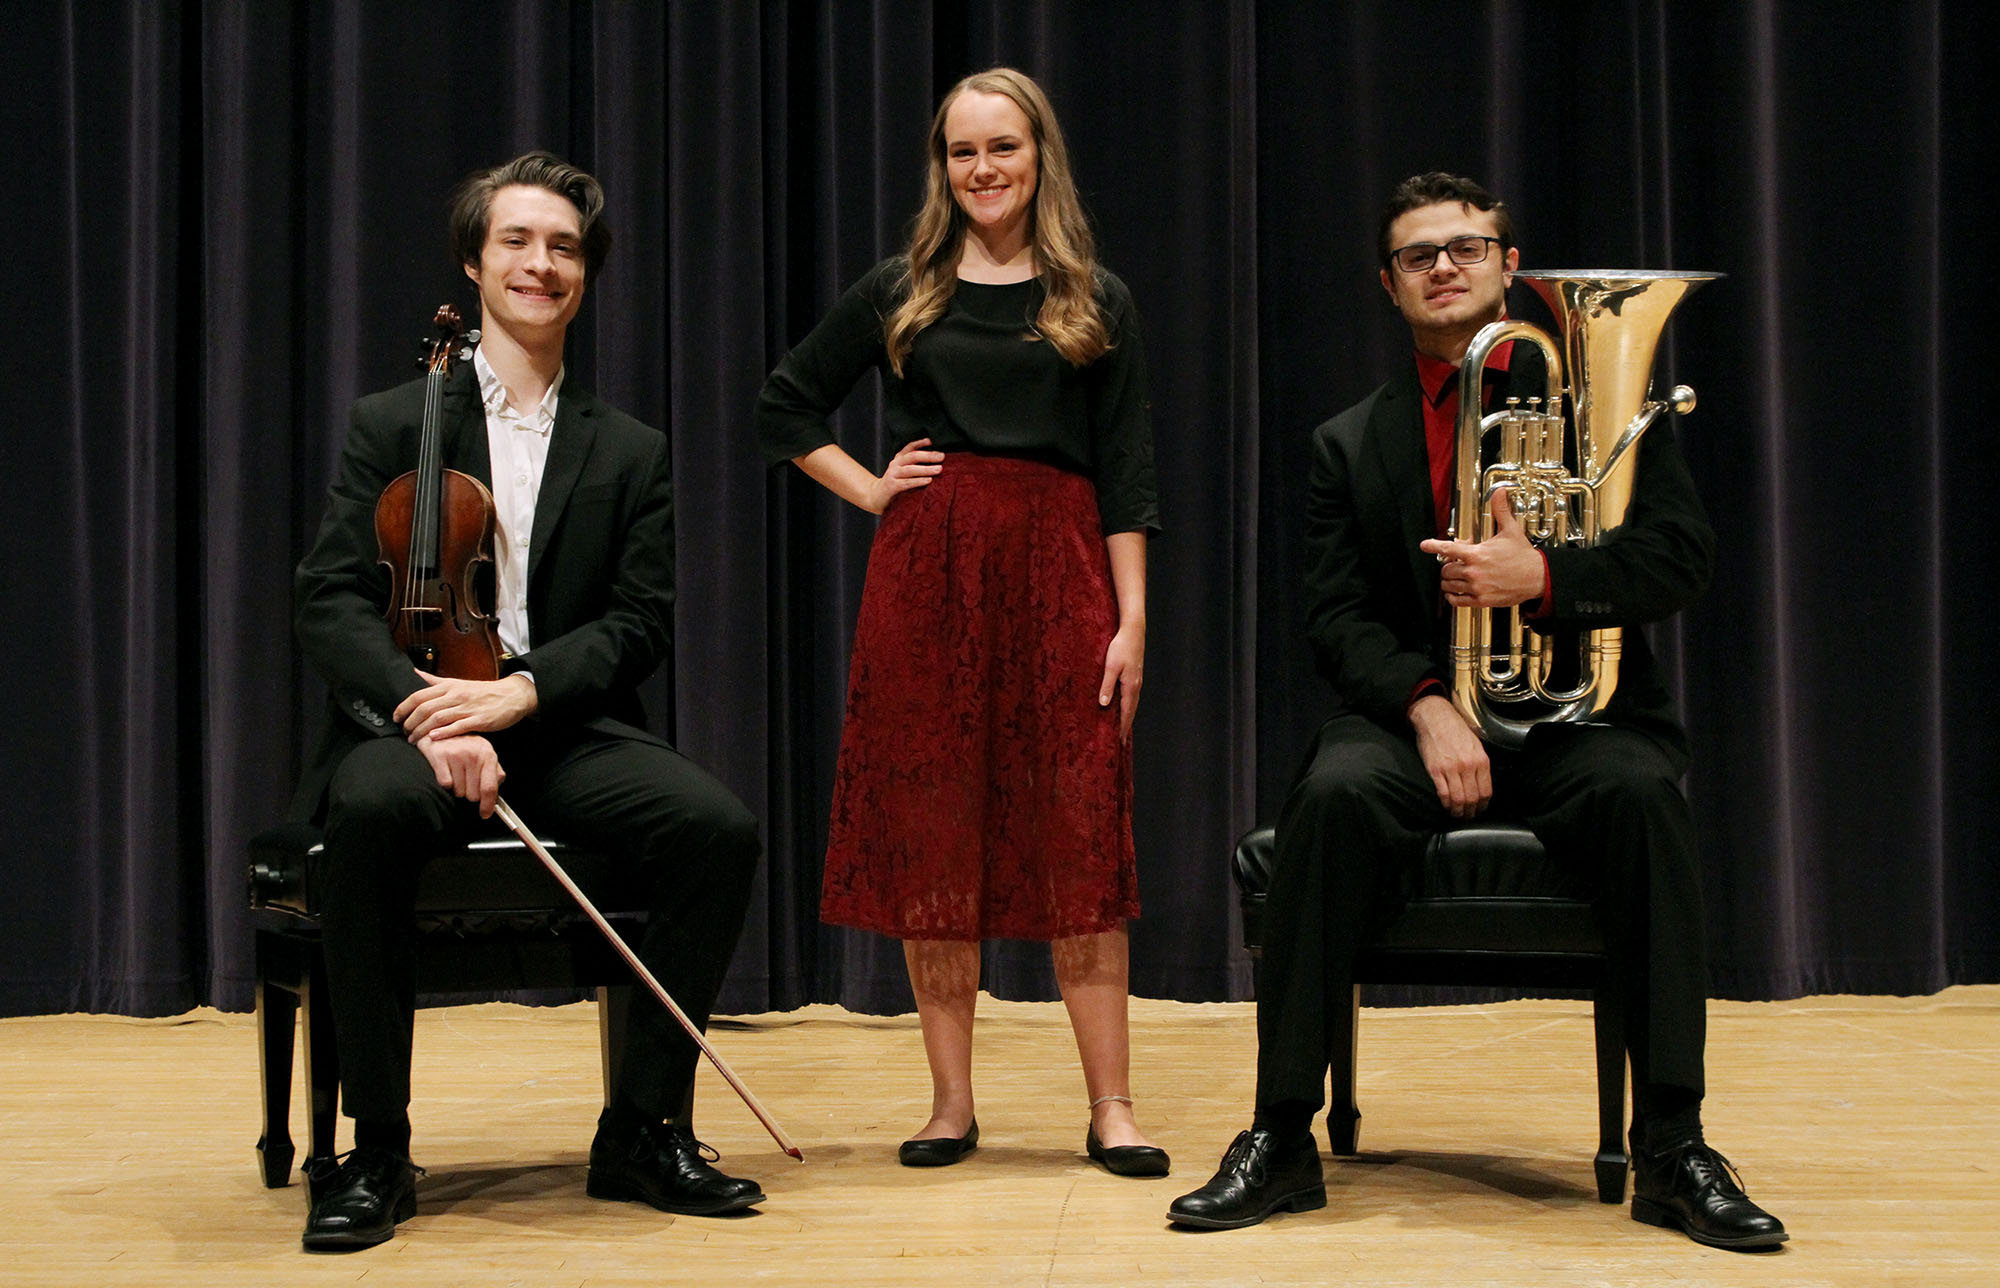 From left, UNK students Joshua Wetovick of Fullerton, Grace Lueders of Blair and Trey Switzer of Gretna were selected as winners of the 2019 Concerto/Aria Competition at UNK. (Photo by Tyler Ellyson, UNK Communications)